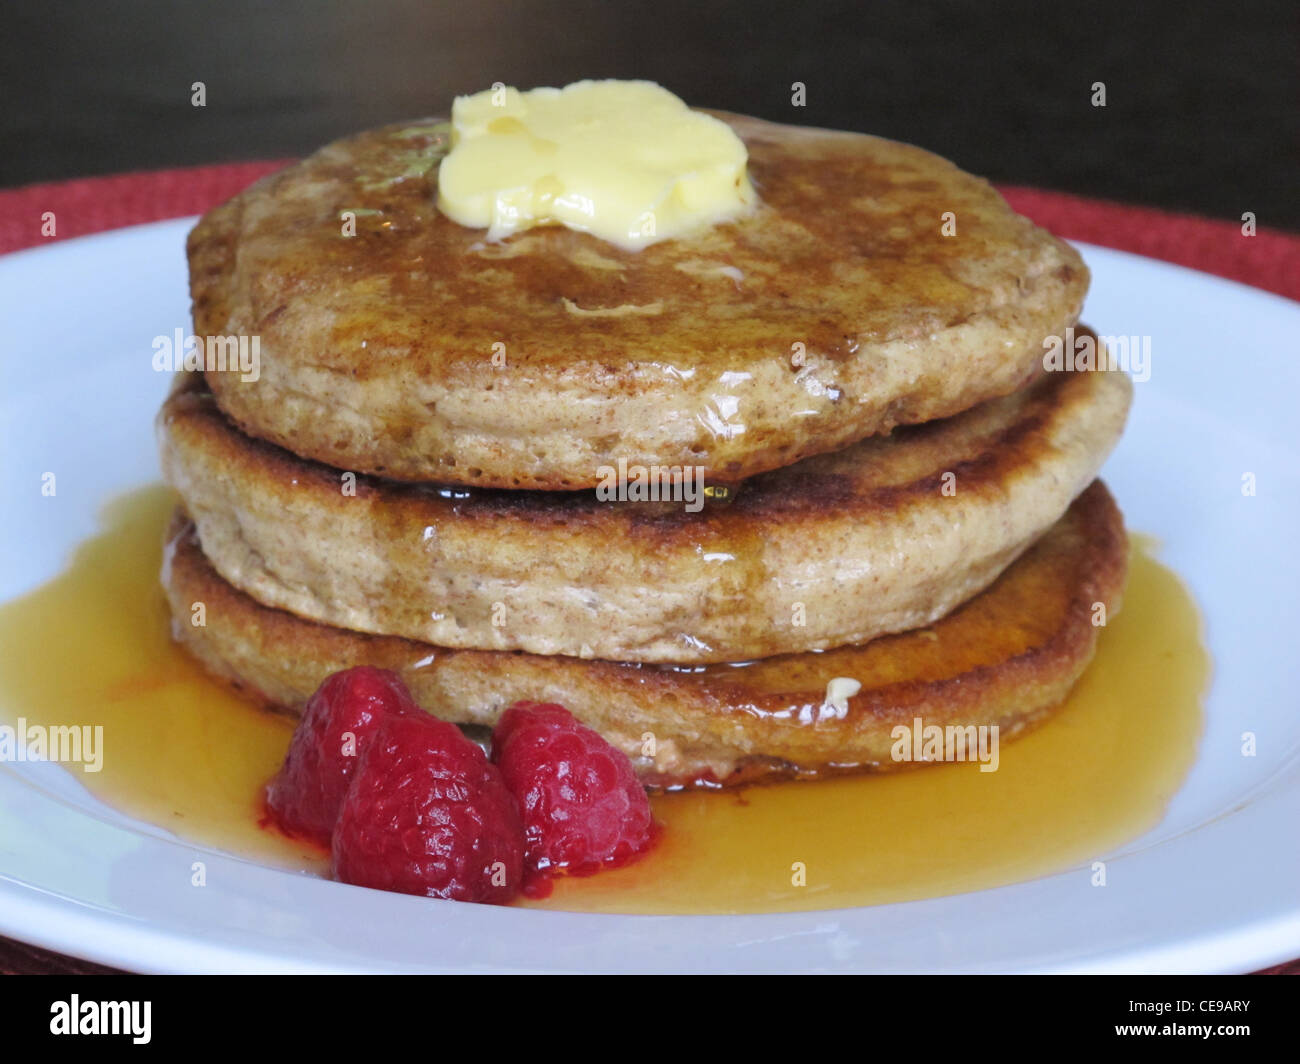 A delicious pancake with maple syrup and butter, with raspberries on the side.  Breakfast food which has high caloric - Stock Image